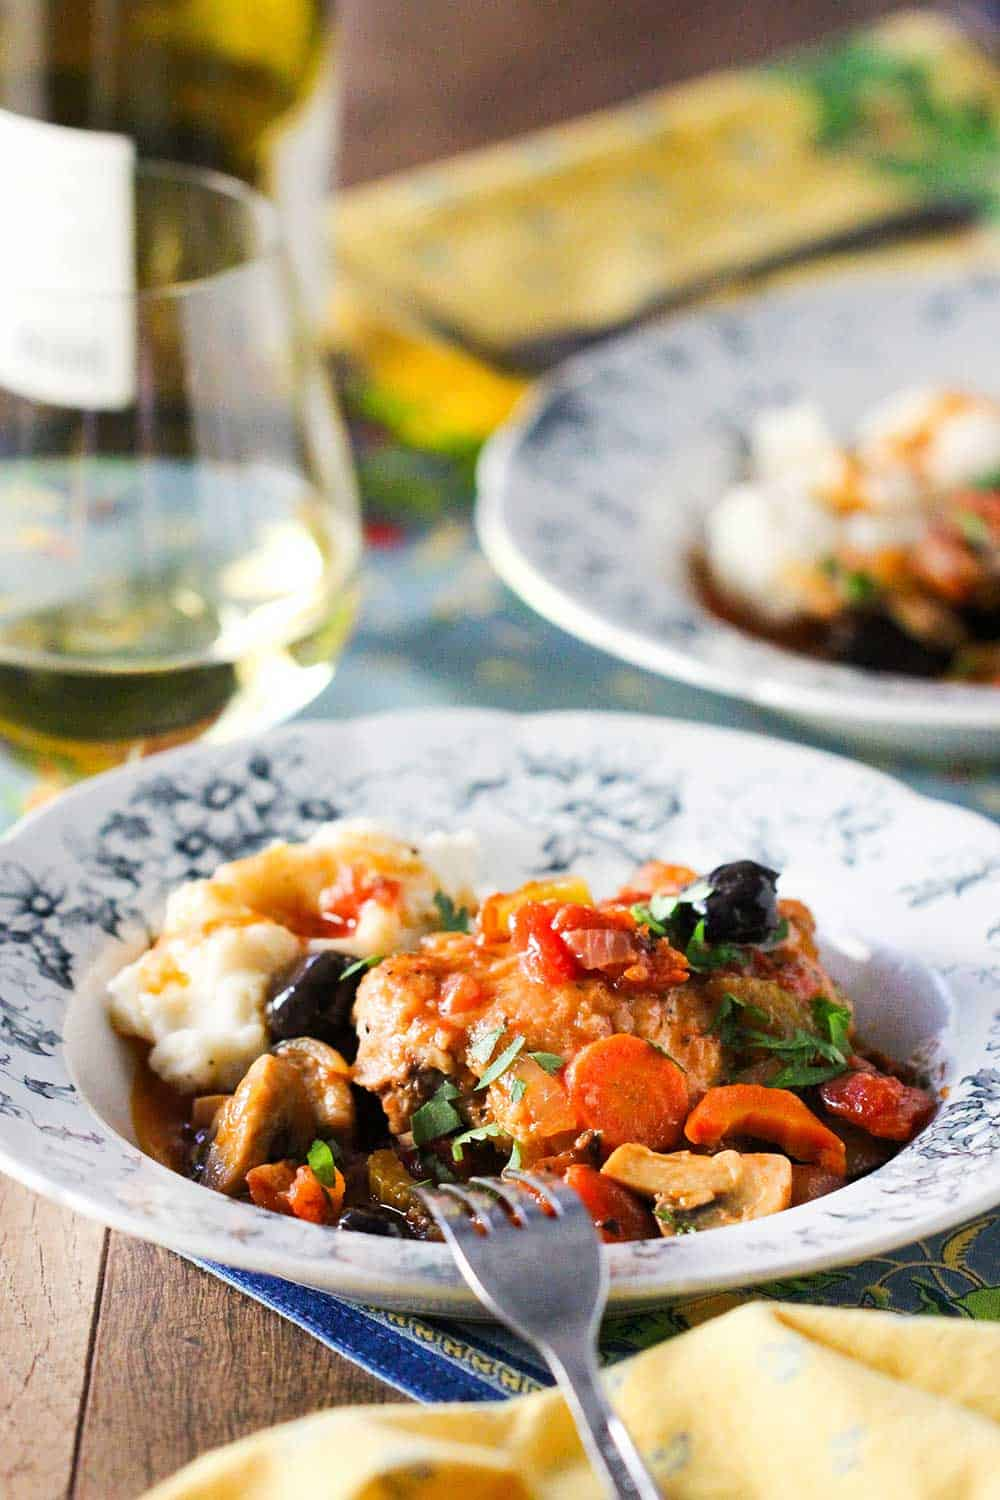 A French dish filled with seared chicken with a tomato, mushrooms and vegetables with a bottle of white wine next to it.